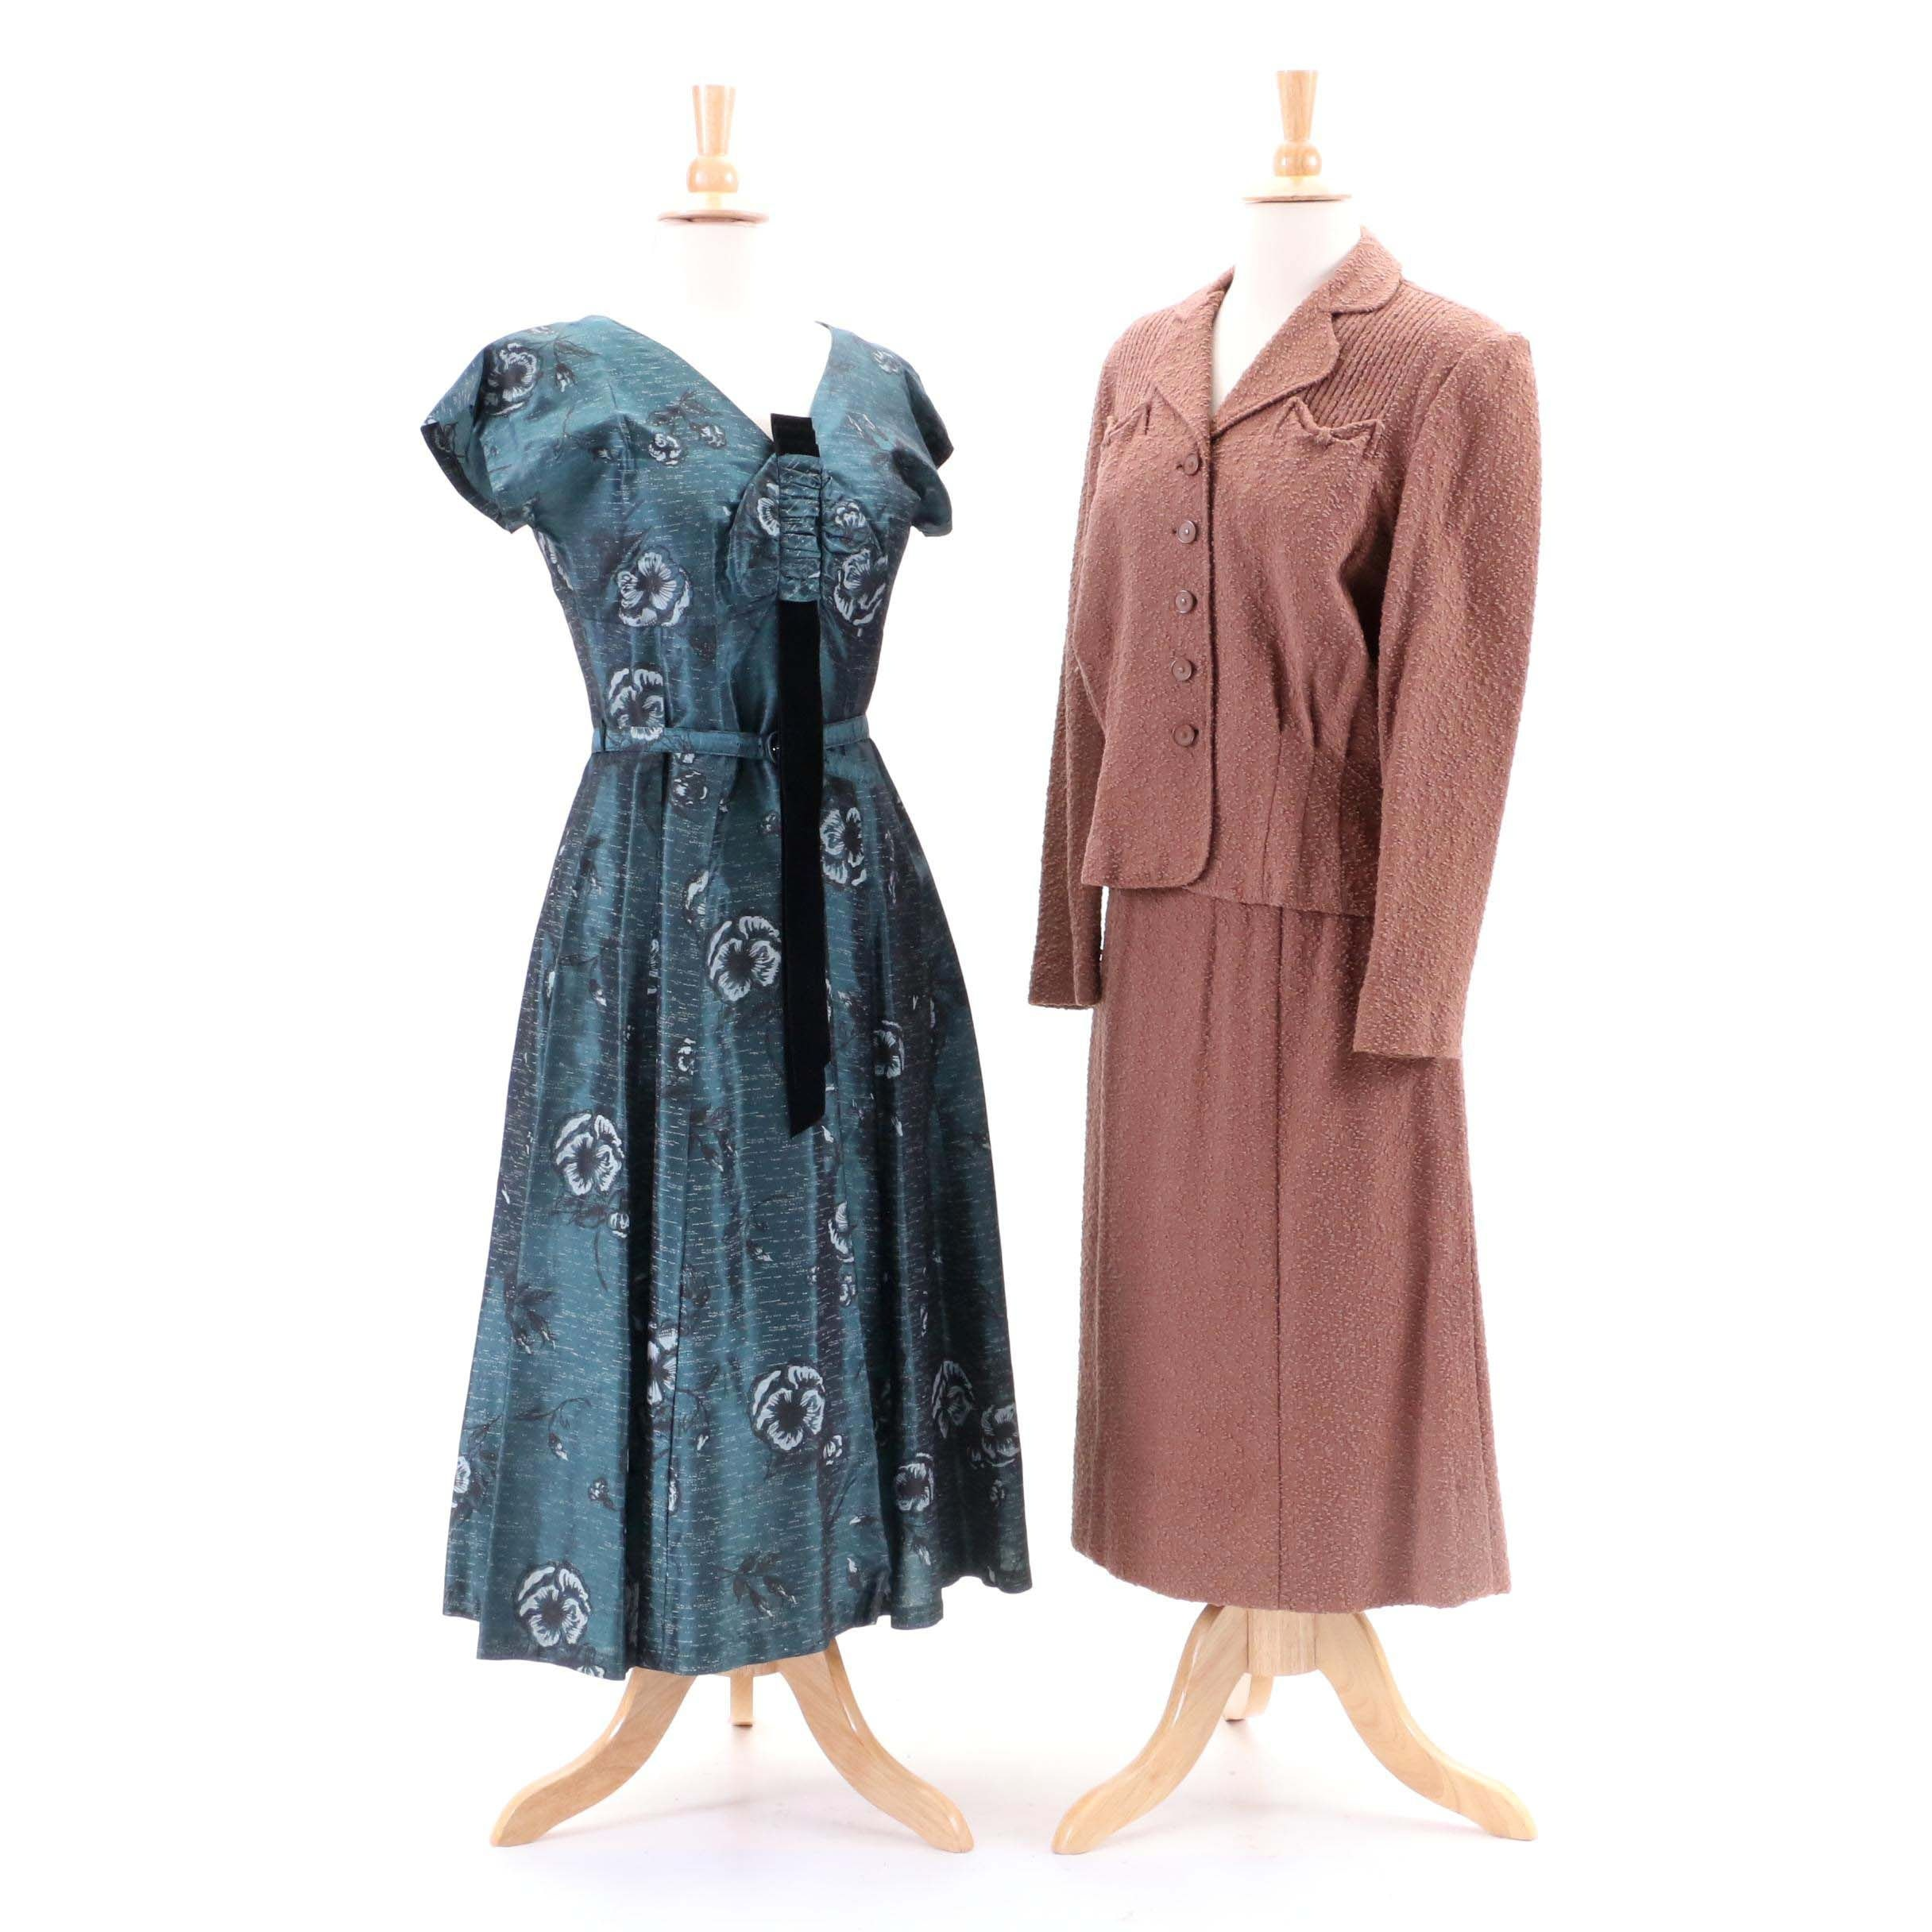 Circa 1950s Vintage Judy Palmer Floral Dress and Groblue Skirt Suit